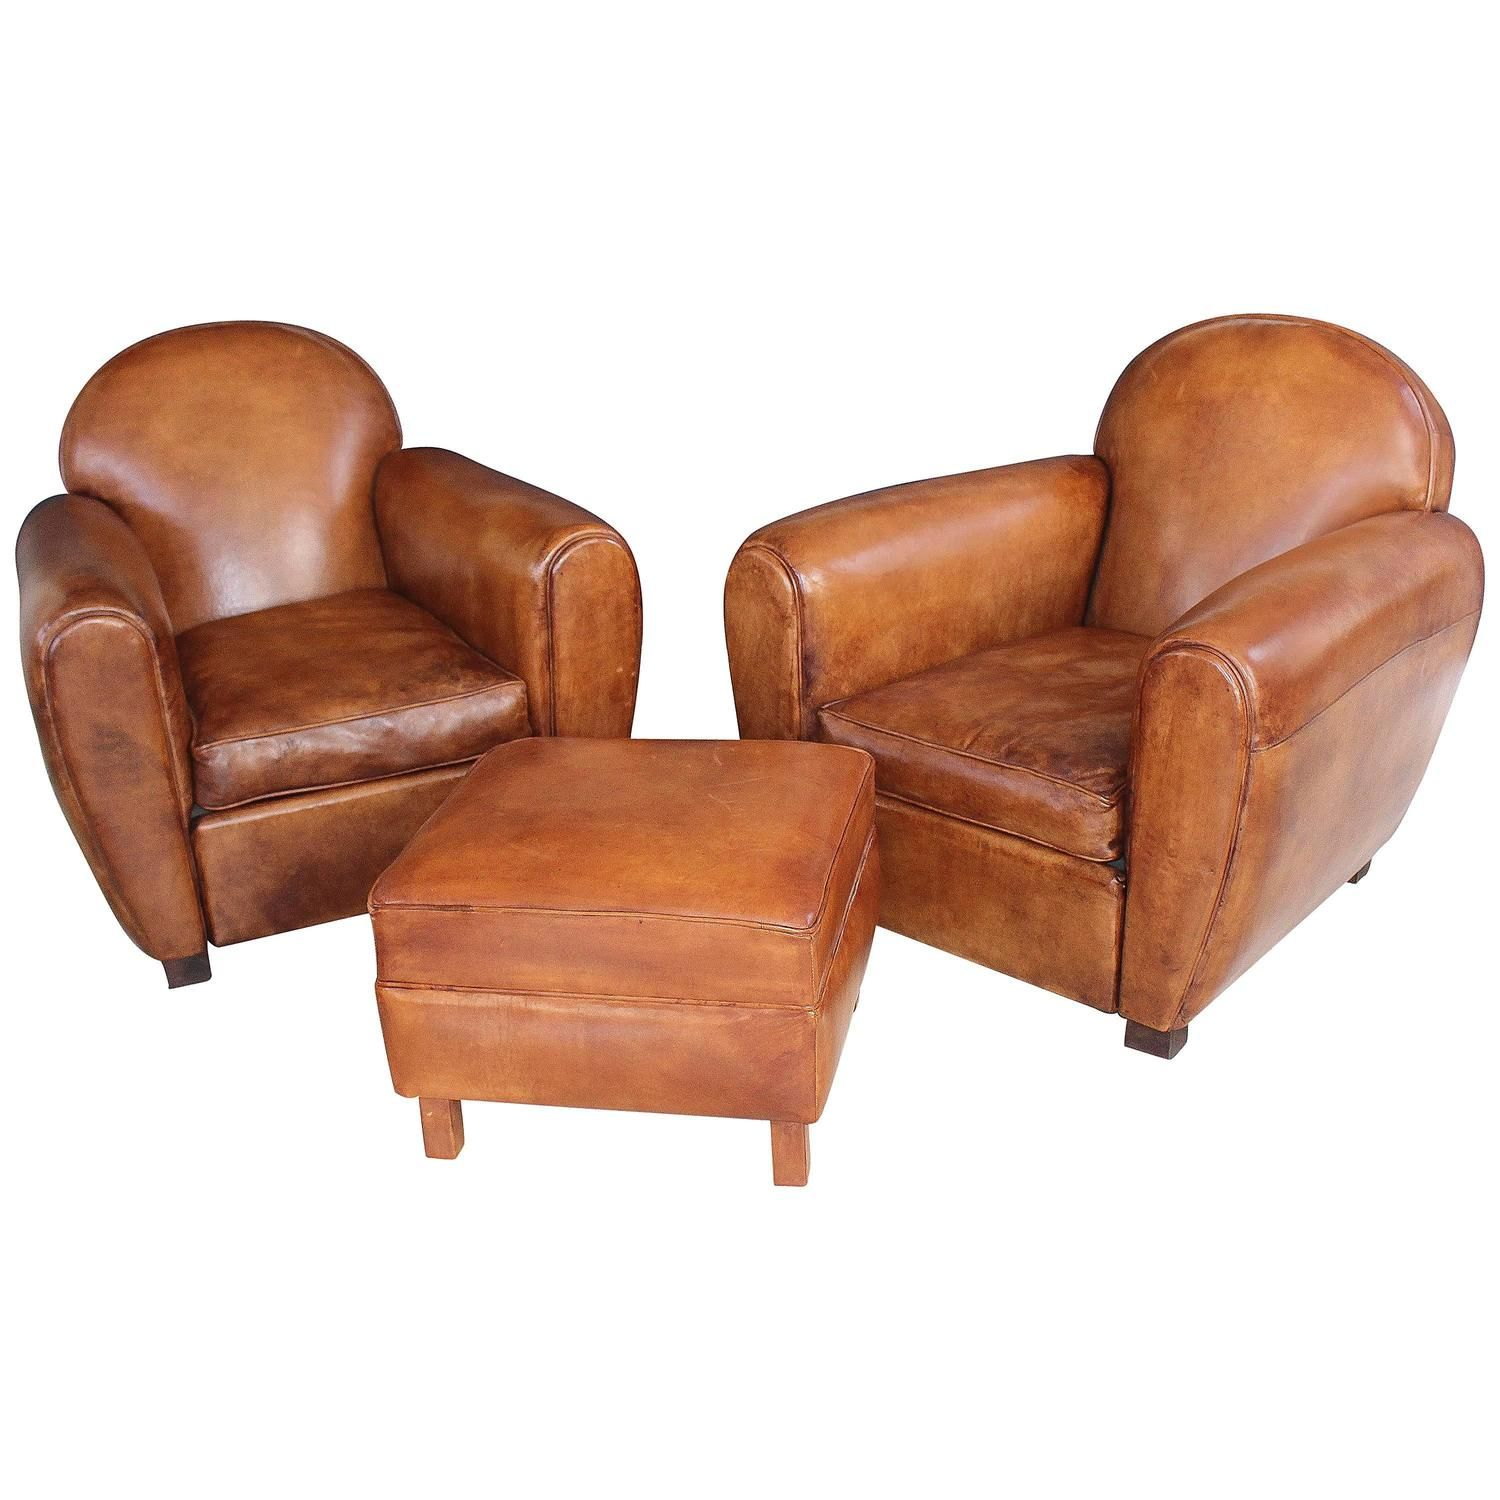 Pin by Sylvie Moss on Furnish | Leather club chairs, Club ...